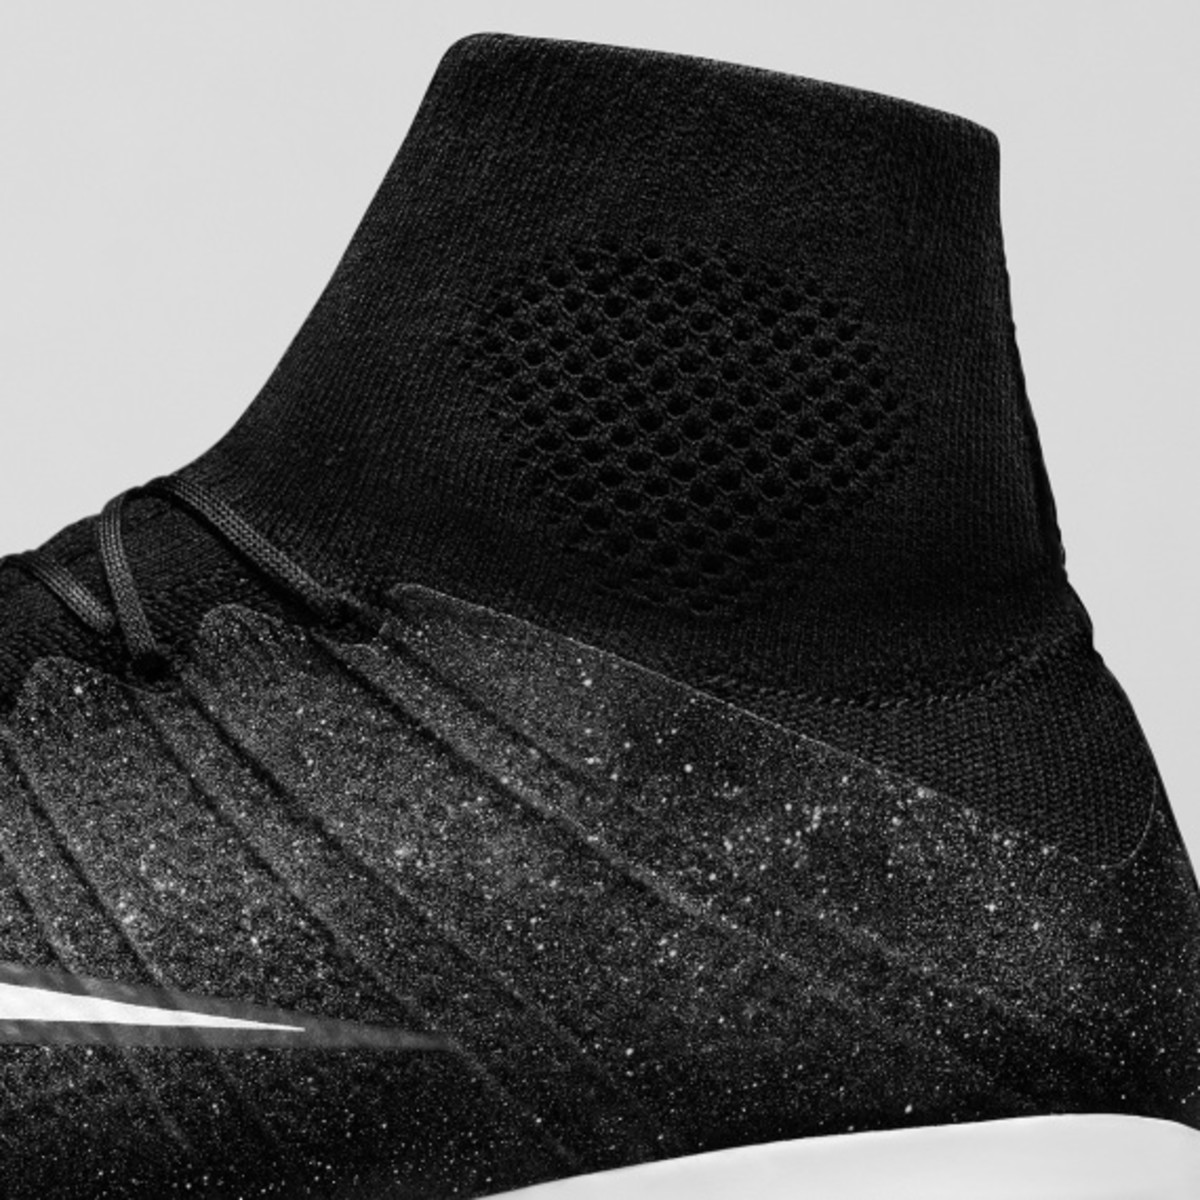 Nike Elastico Superfly IC SE - Officially Unveiled - 6